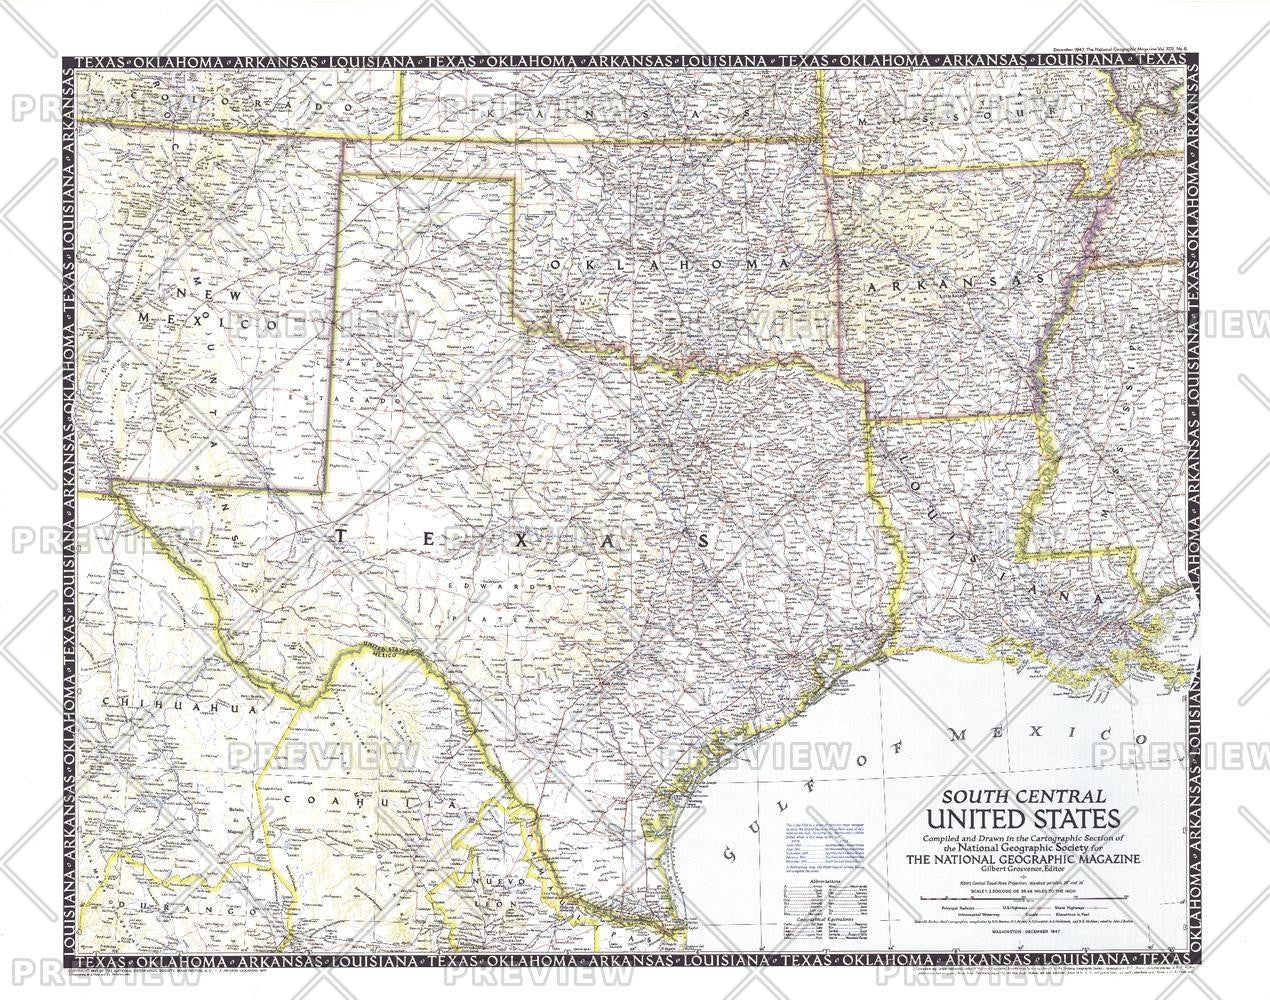 Map Of Texas And Louisiana Border.South Central United States Published 1947